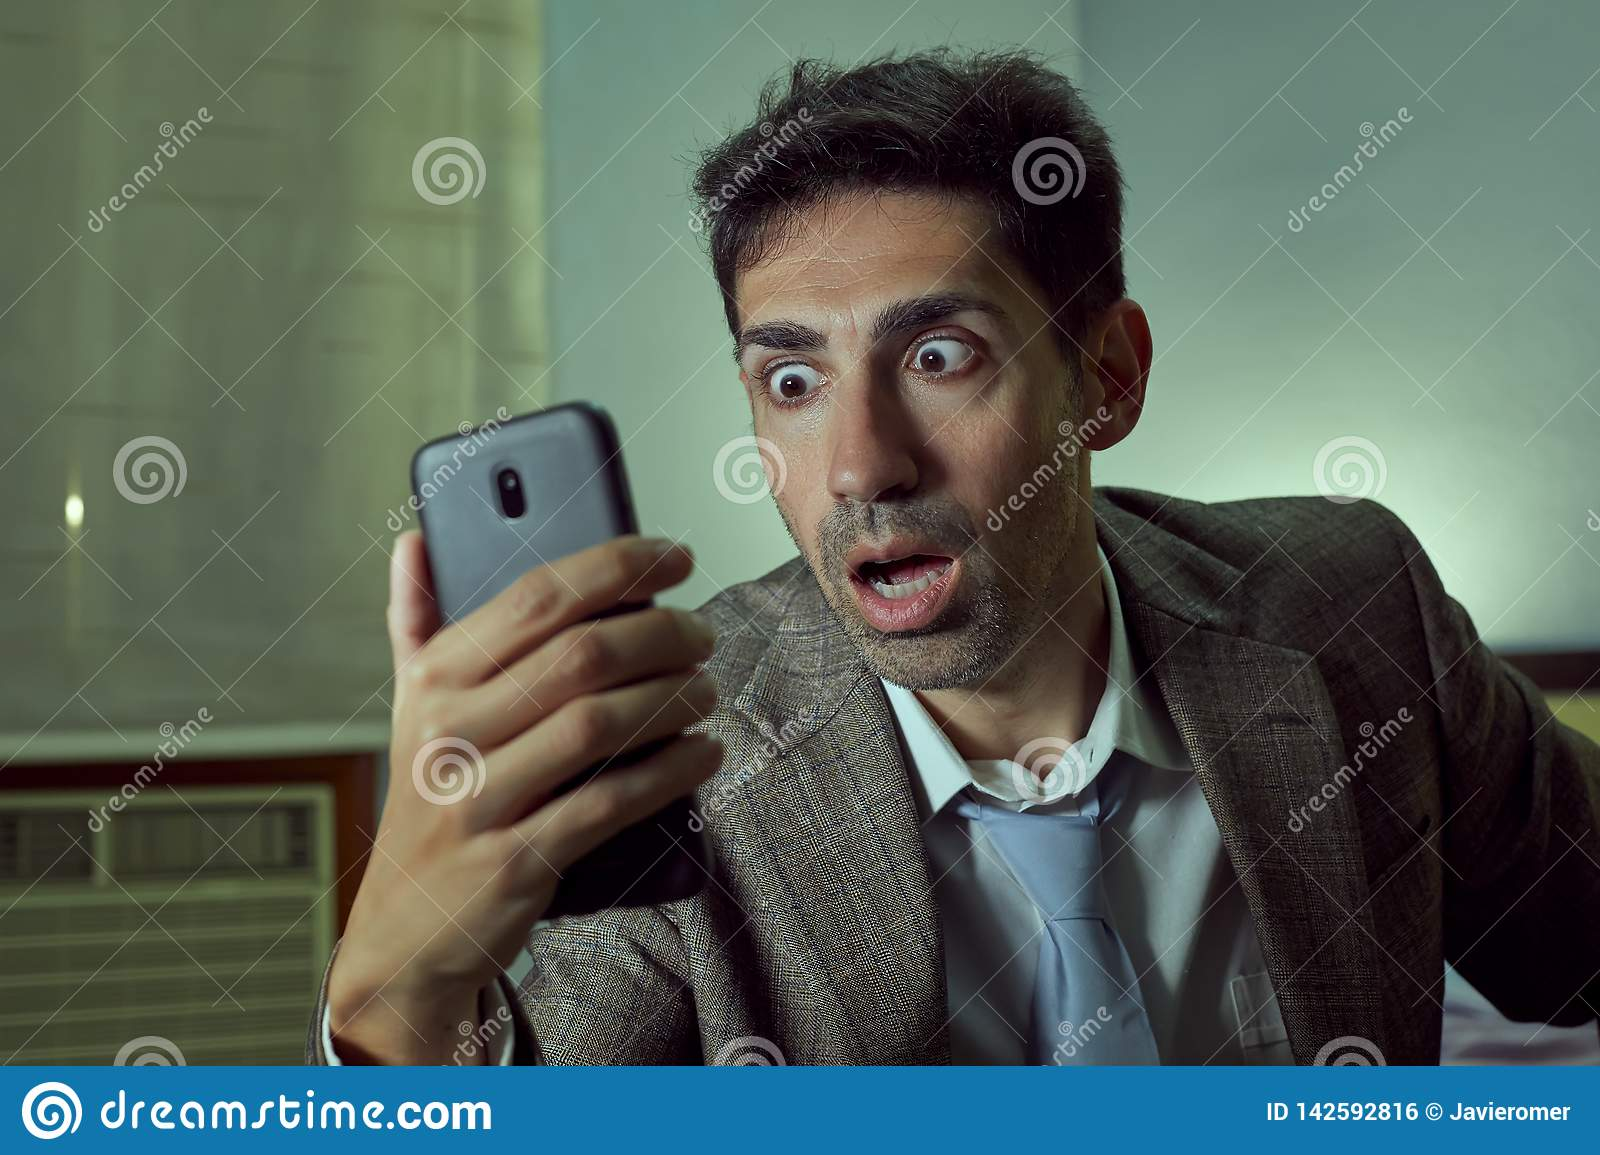 Very surprised man looking at his smartphone in a room